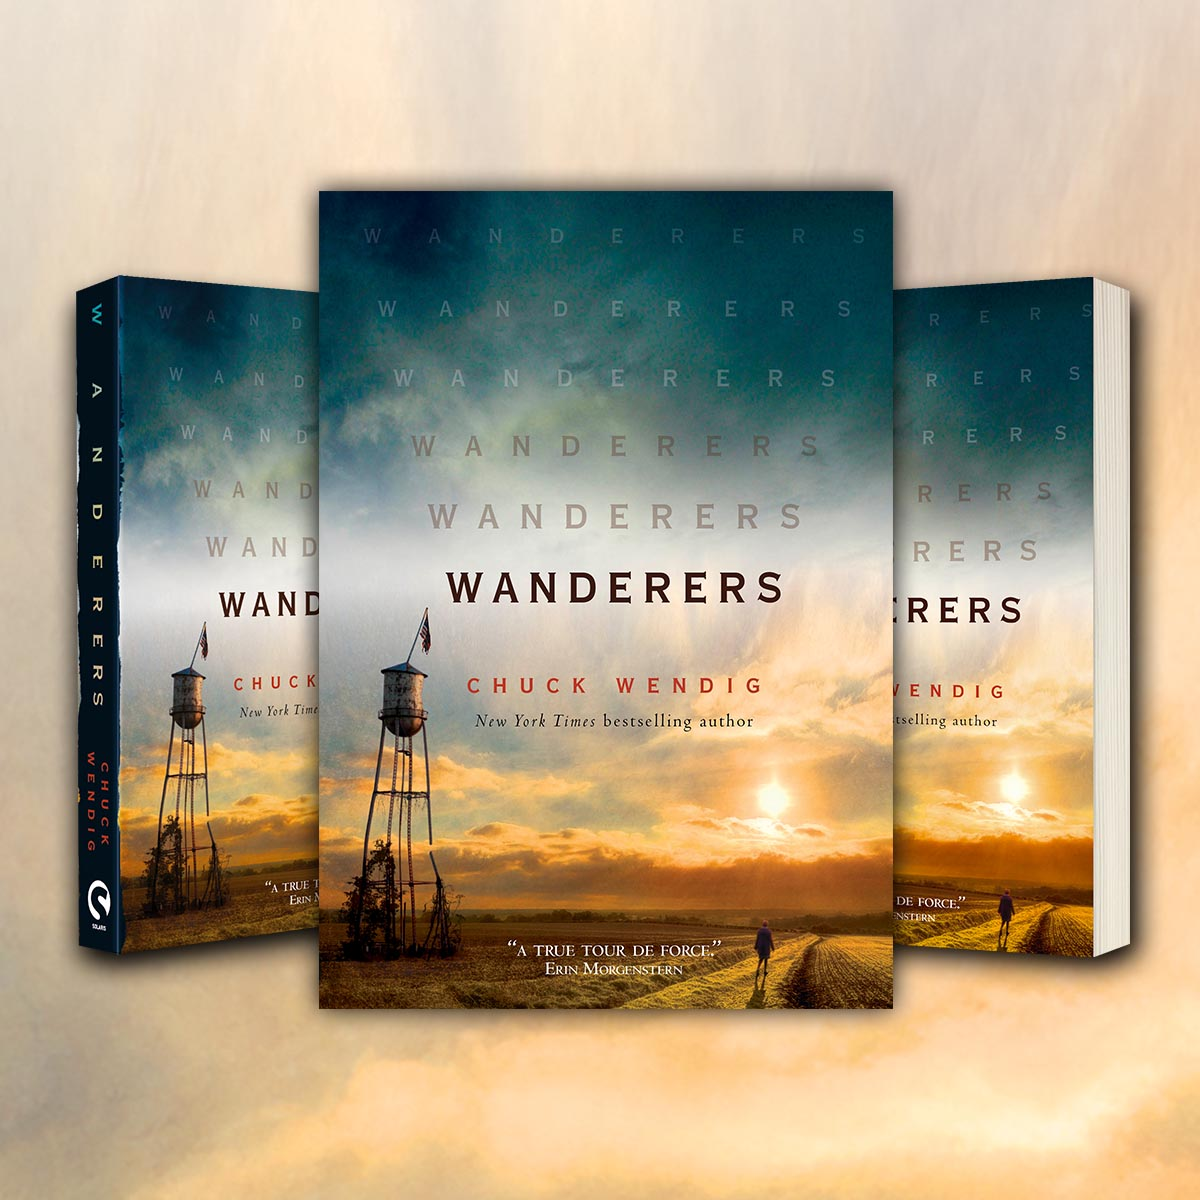 Wanderers (paperback)